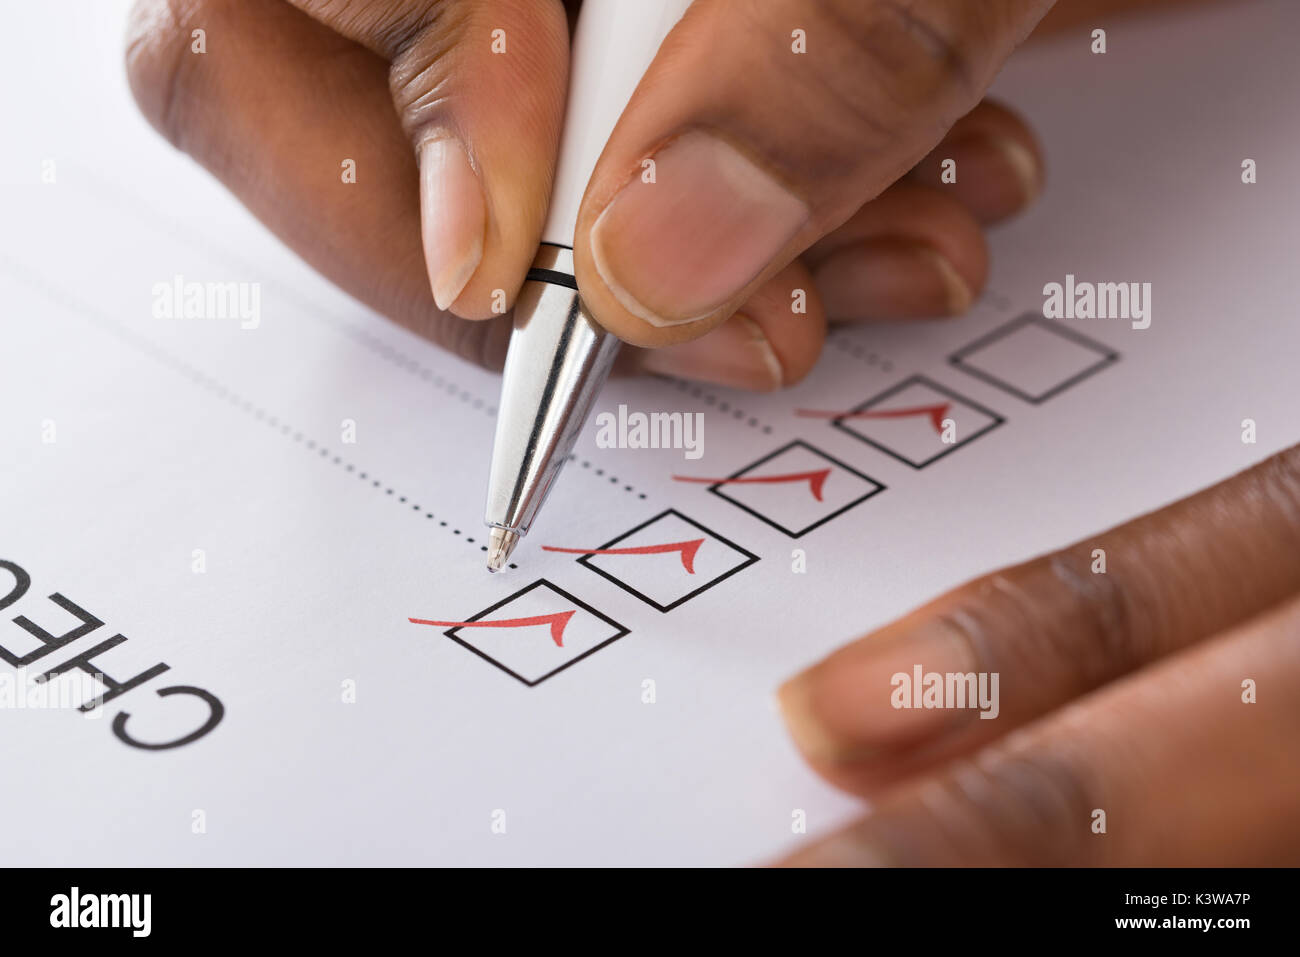 Close-up Of Person's Hand Marking On Checklist Form With Red Pen - Stock Image